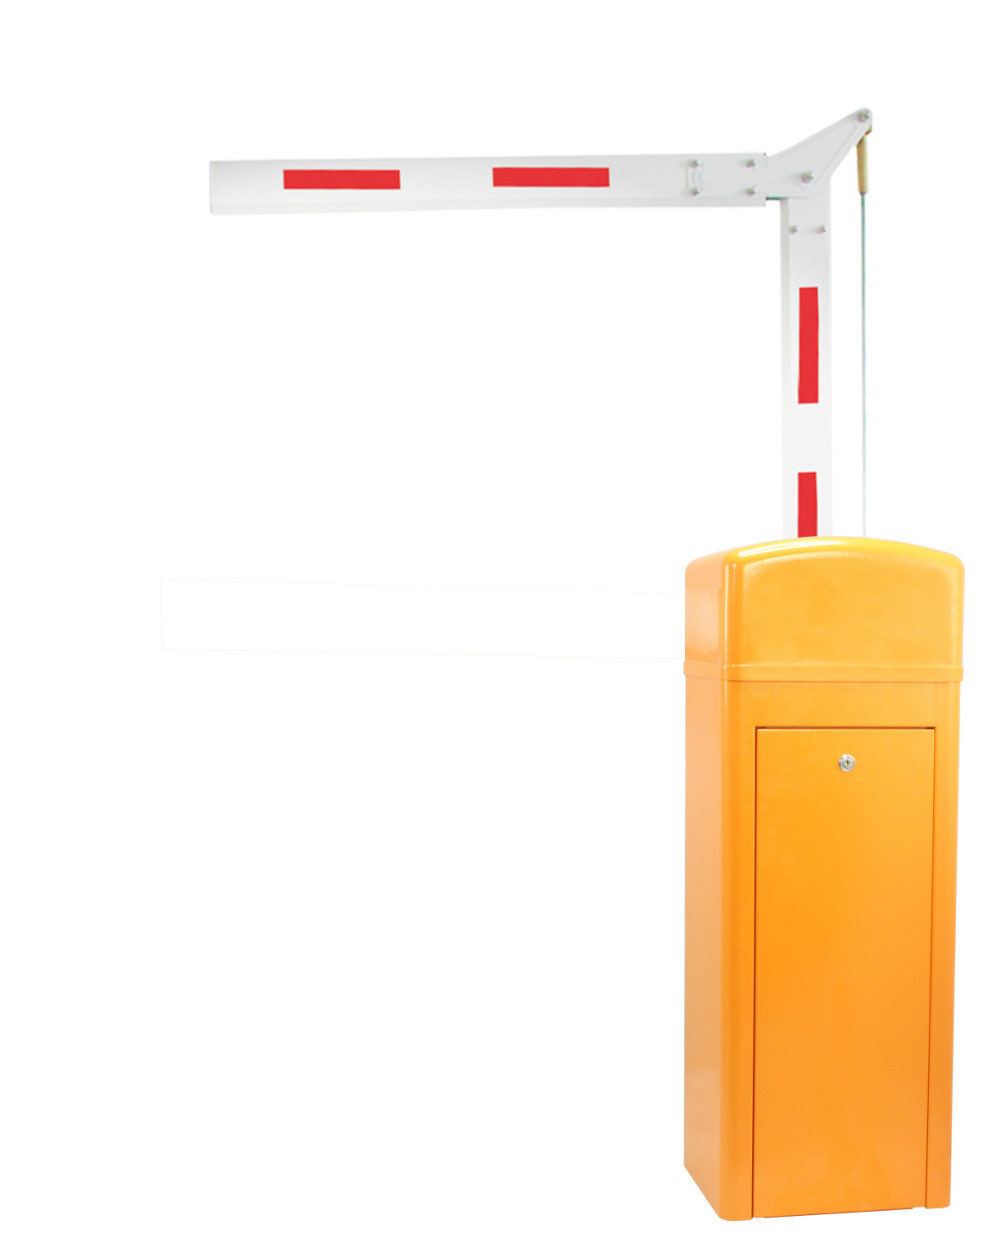 Automatic Barrier Gate System with articulated arm for parking access control electric parking barrier boom gate with high speed and compatible with other system